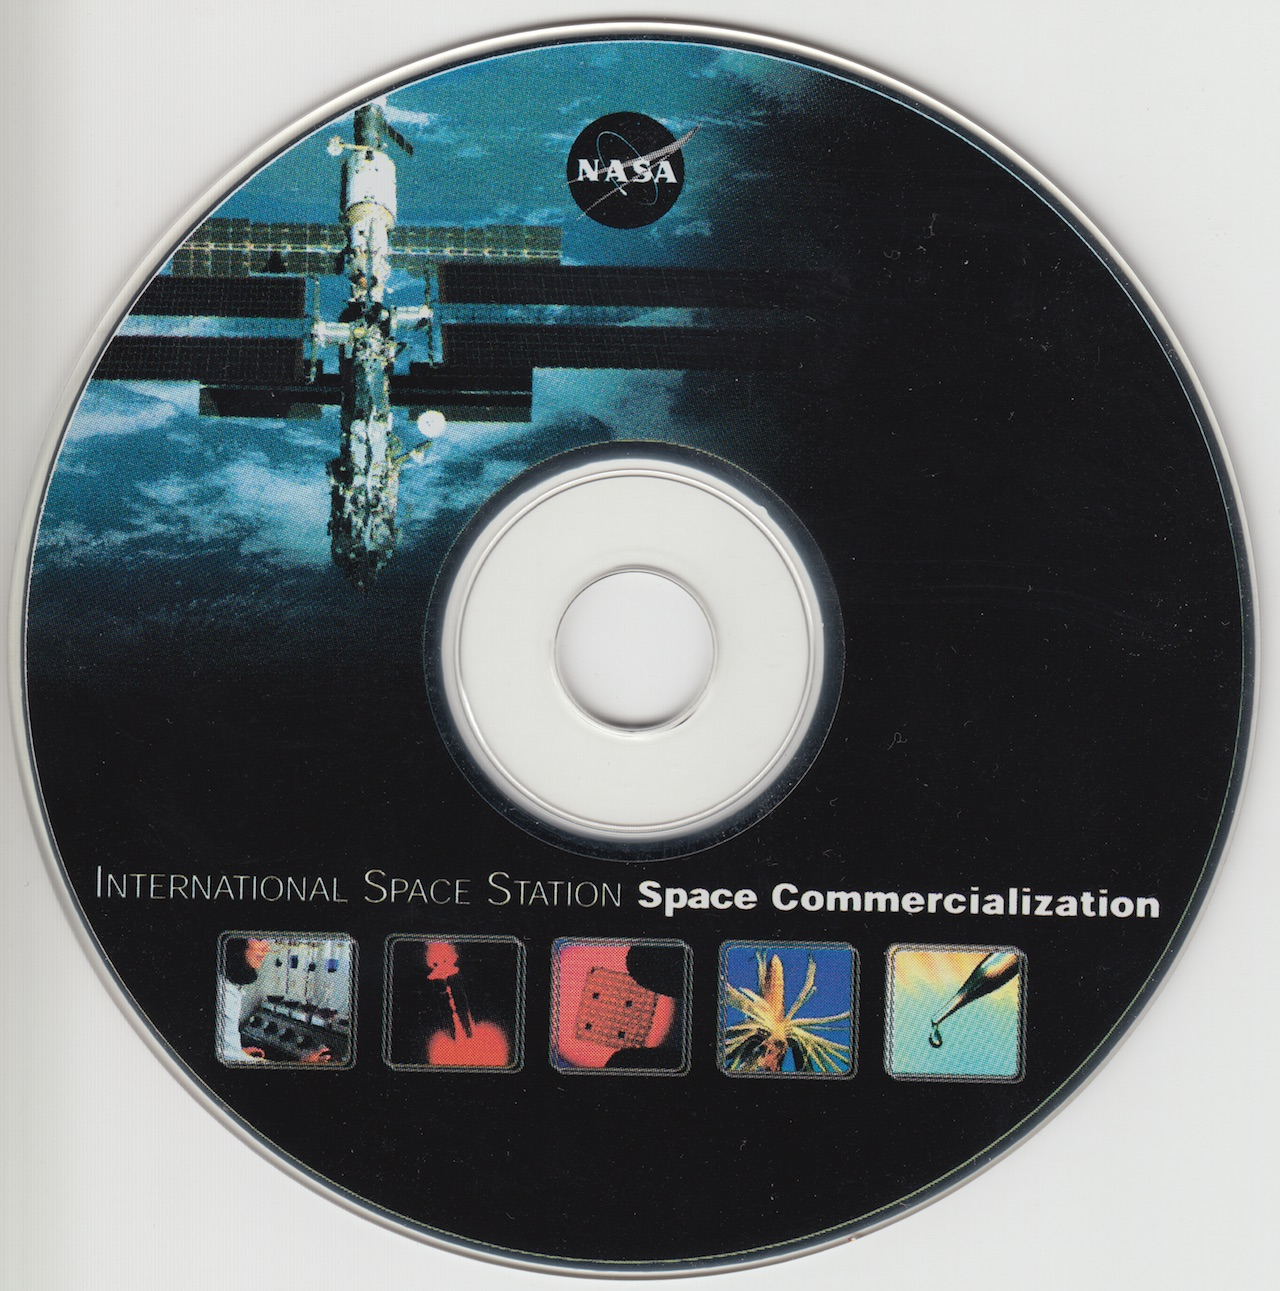 International Space Station Space Commercialization CD-ROM